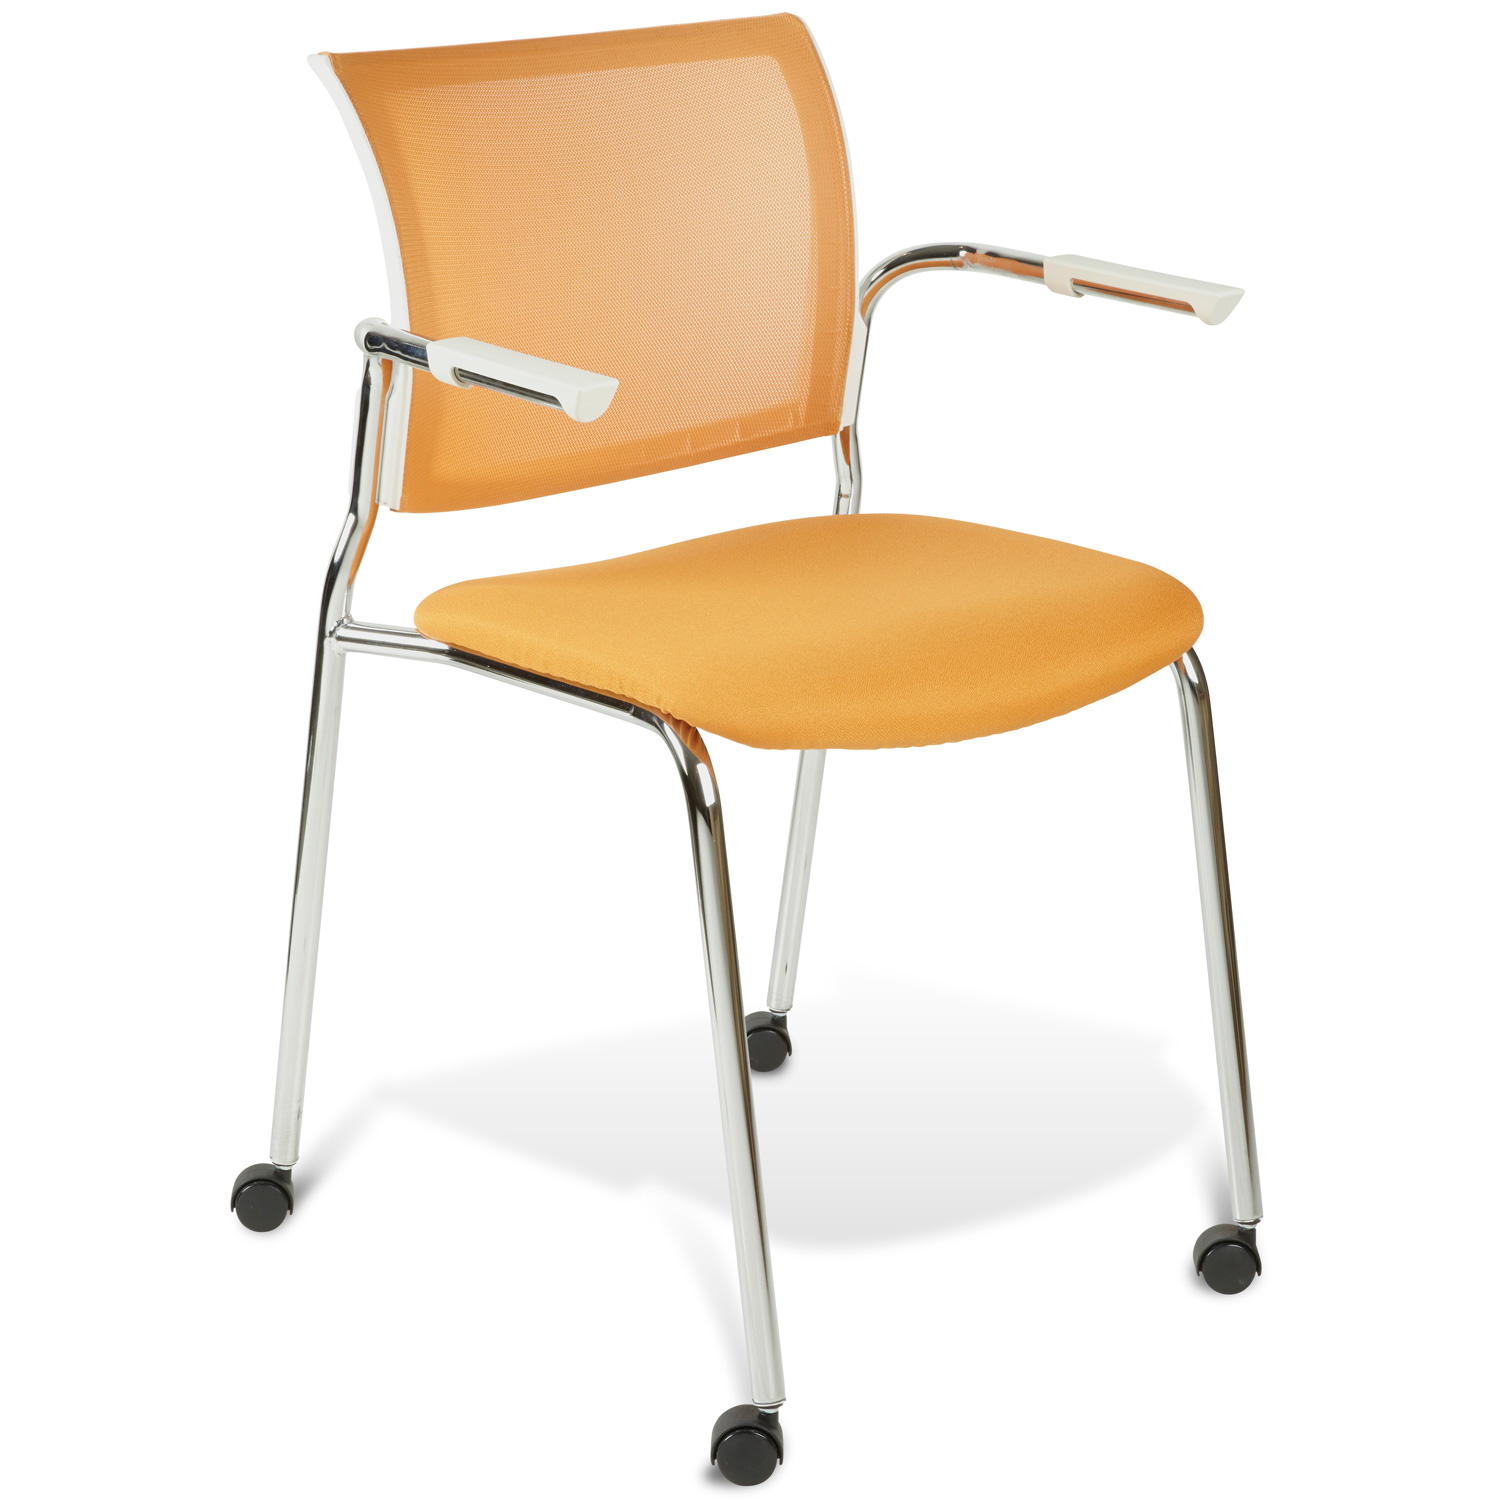 Jenna Conference Chair - Casters, Stackable, Orange